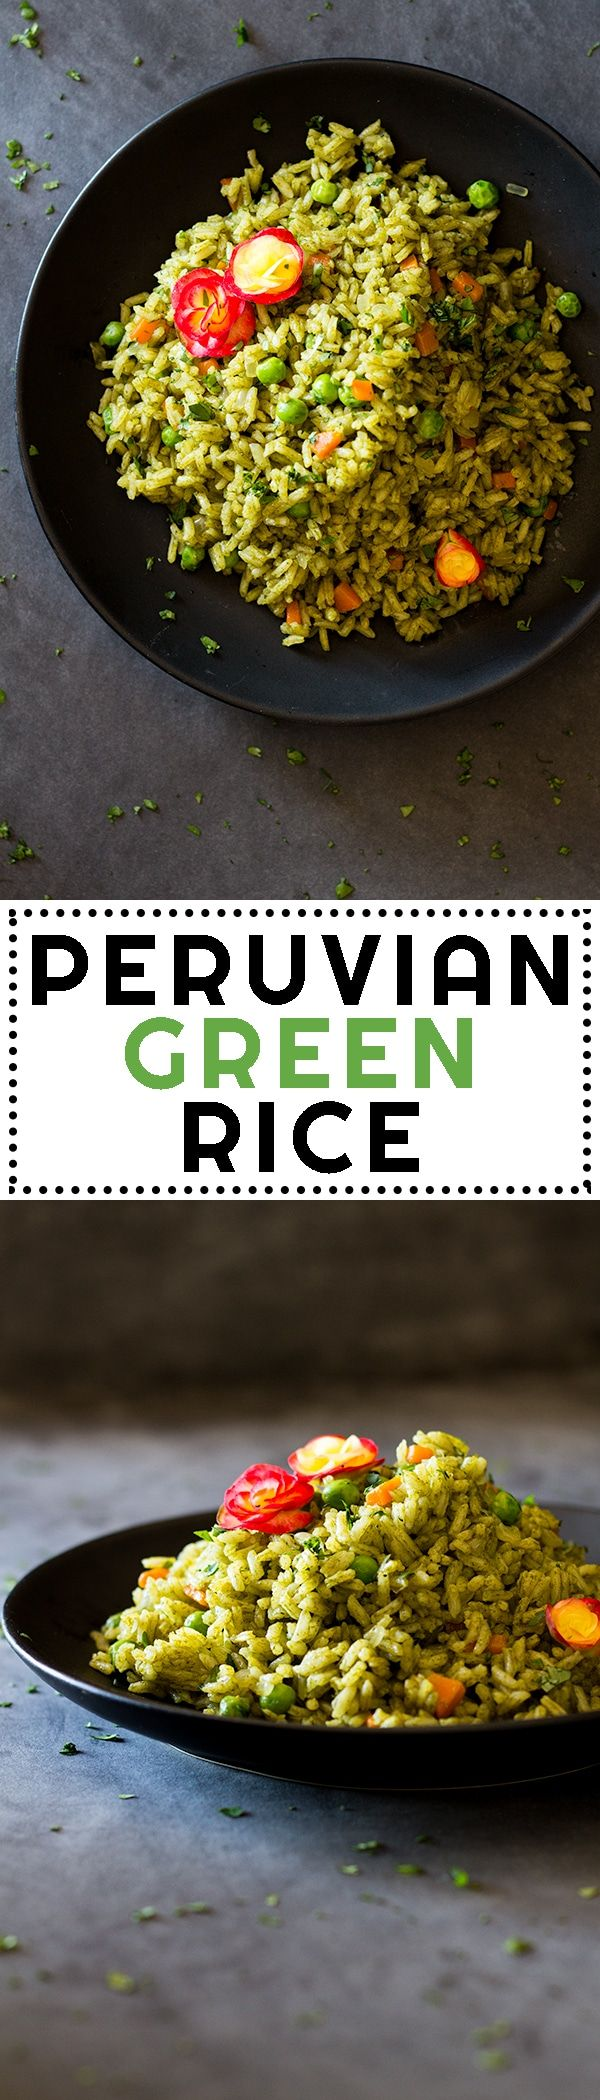 This Peruvian Green Rice is hands down the best side rice in the world! A bunch of coriander not only makes it green but extraordinarily nutritious and delicious! via @greenhealthycoo